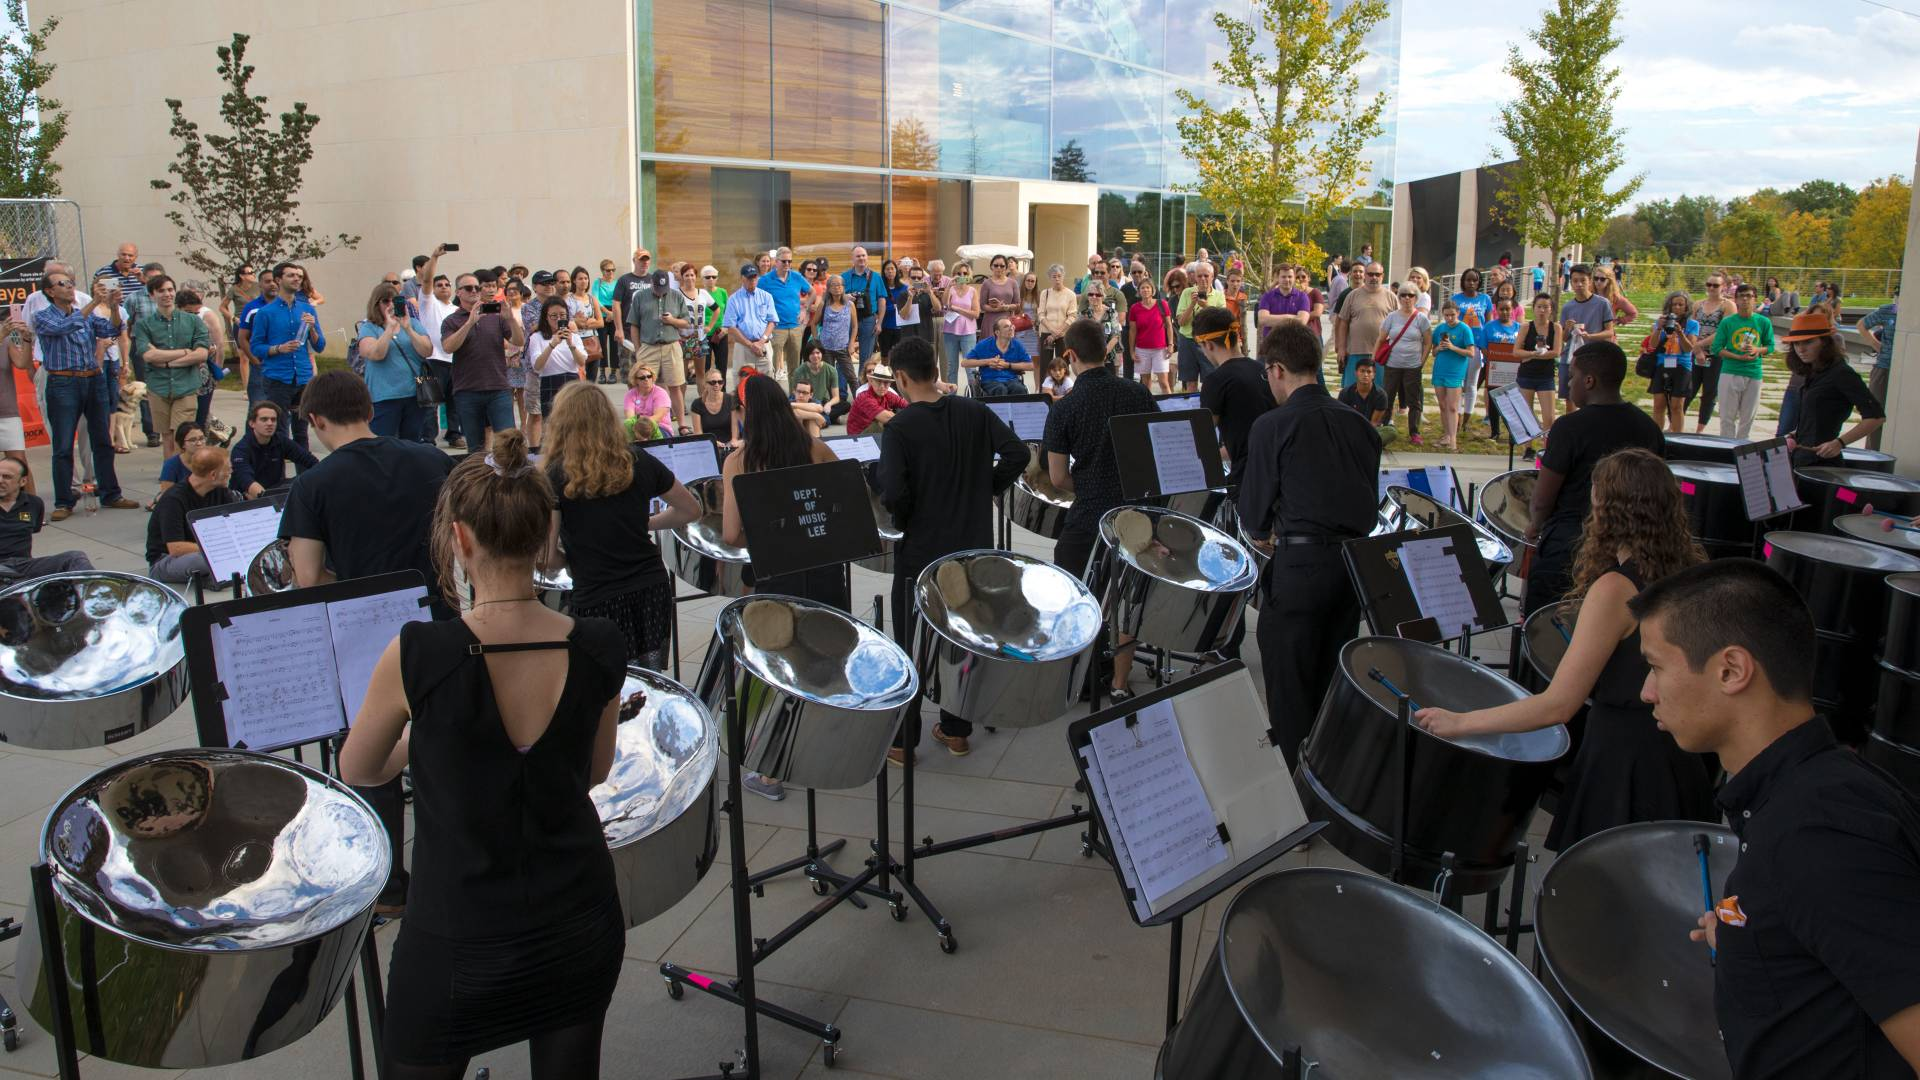 Princeton steel band performing outside at Lewis Arts complex